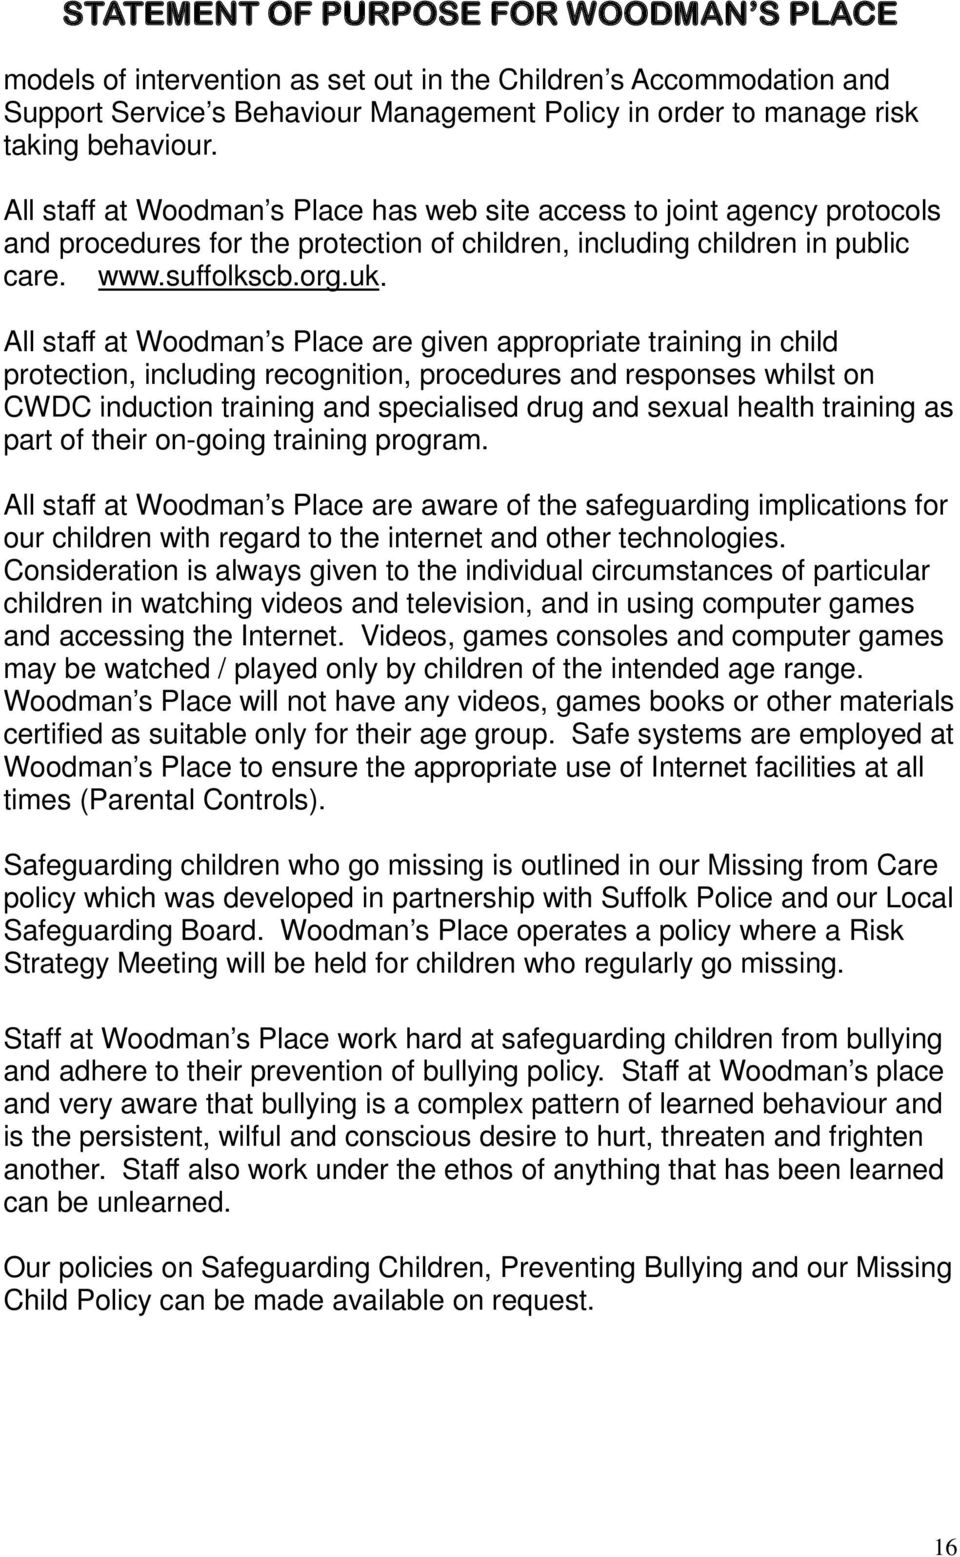 All staff at Woodman s Place are given appropriate training in child protection, including recognition, procedures and responses whilst on CWDC induction training and specialised drug and sexual